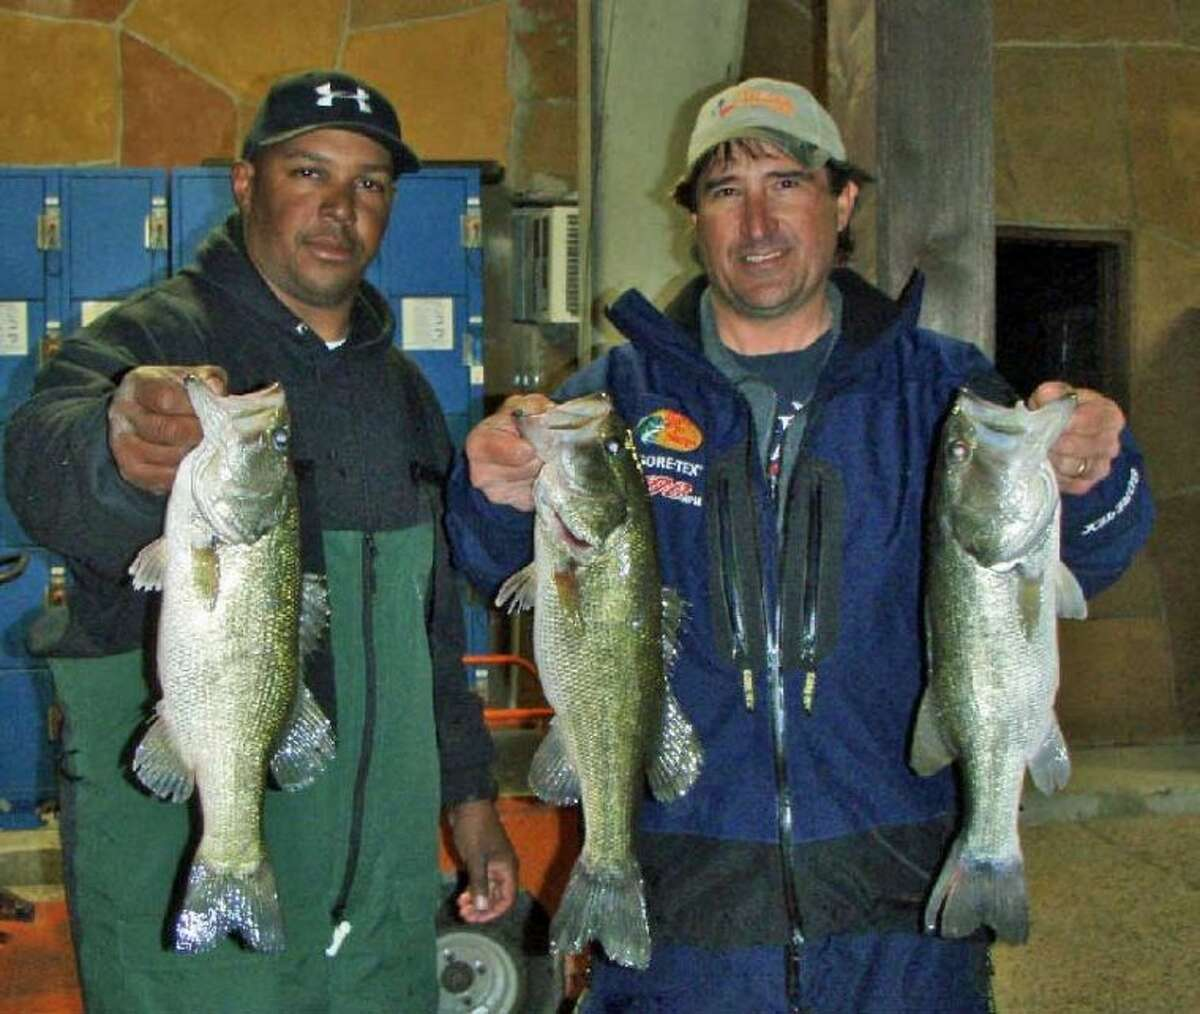 Robert Baney and Rondell Joseph won the Conroe Bass Tuesday Night Tournament on March 5 with a stringer weight of 7.79 pounds.